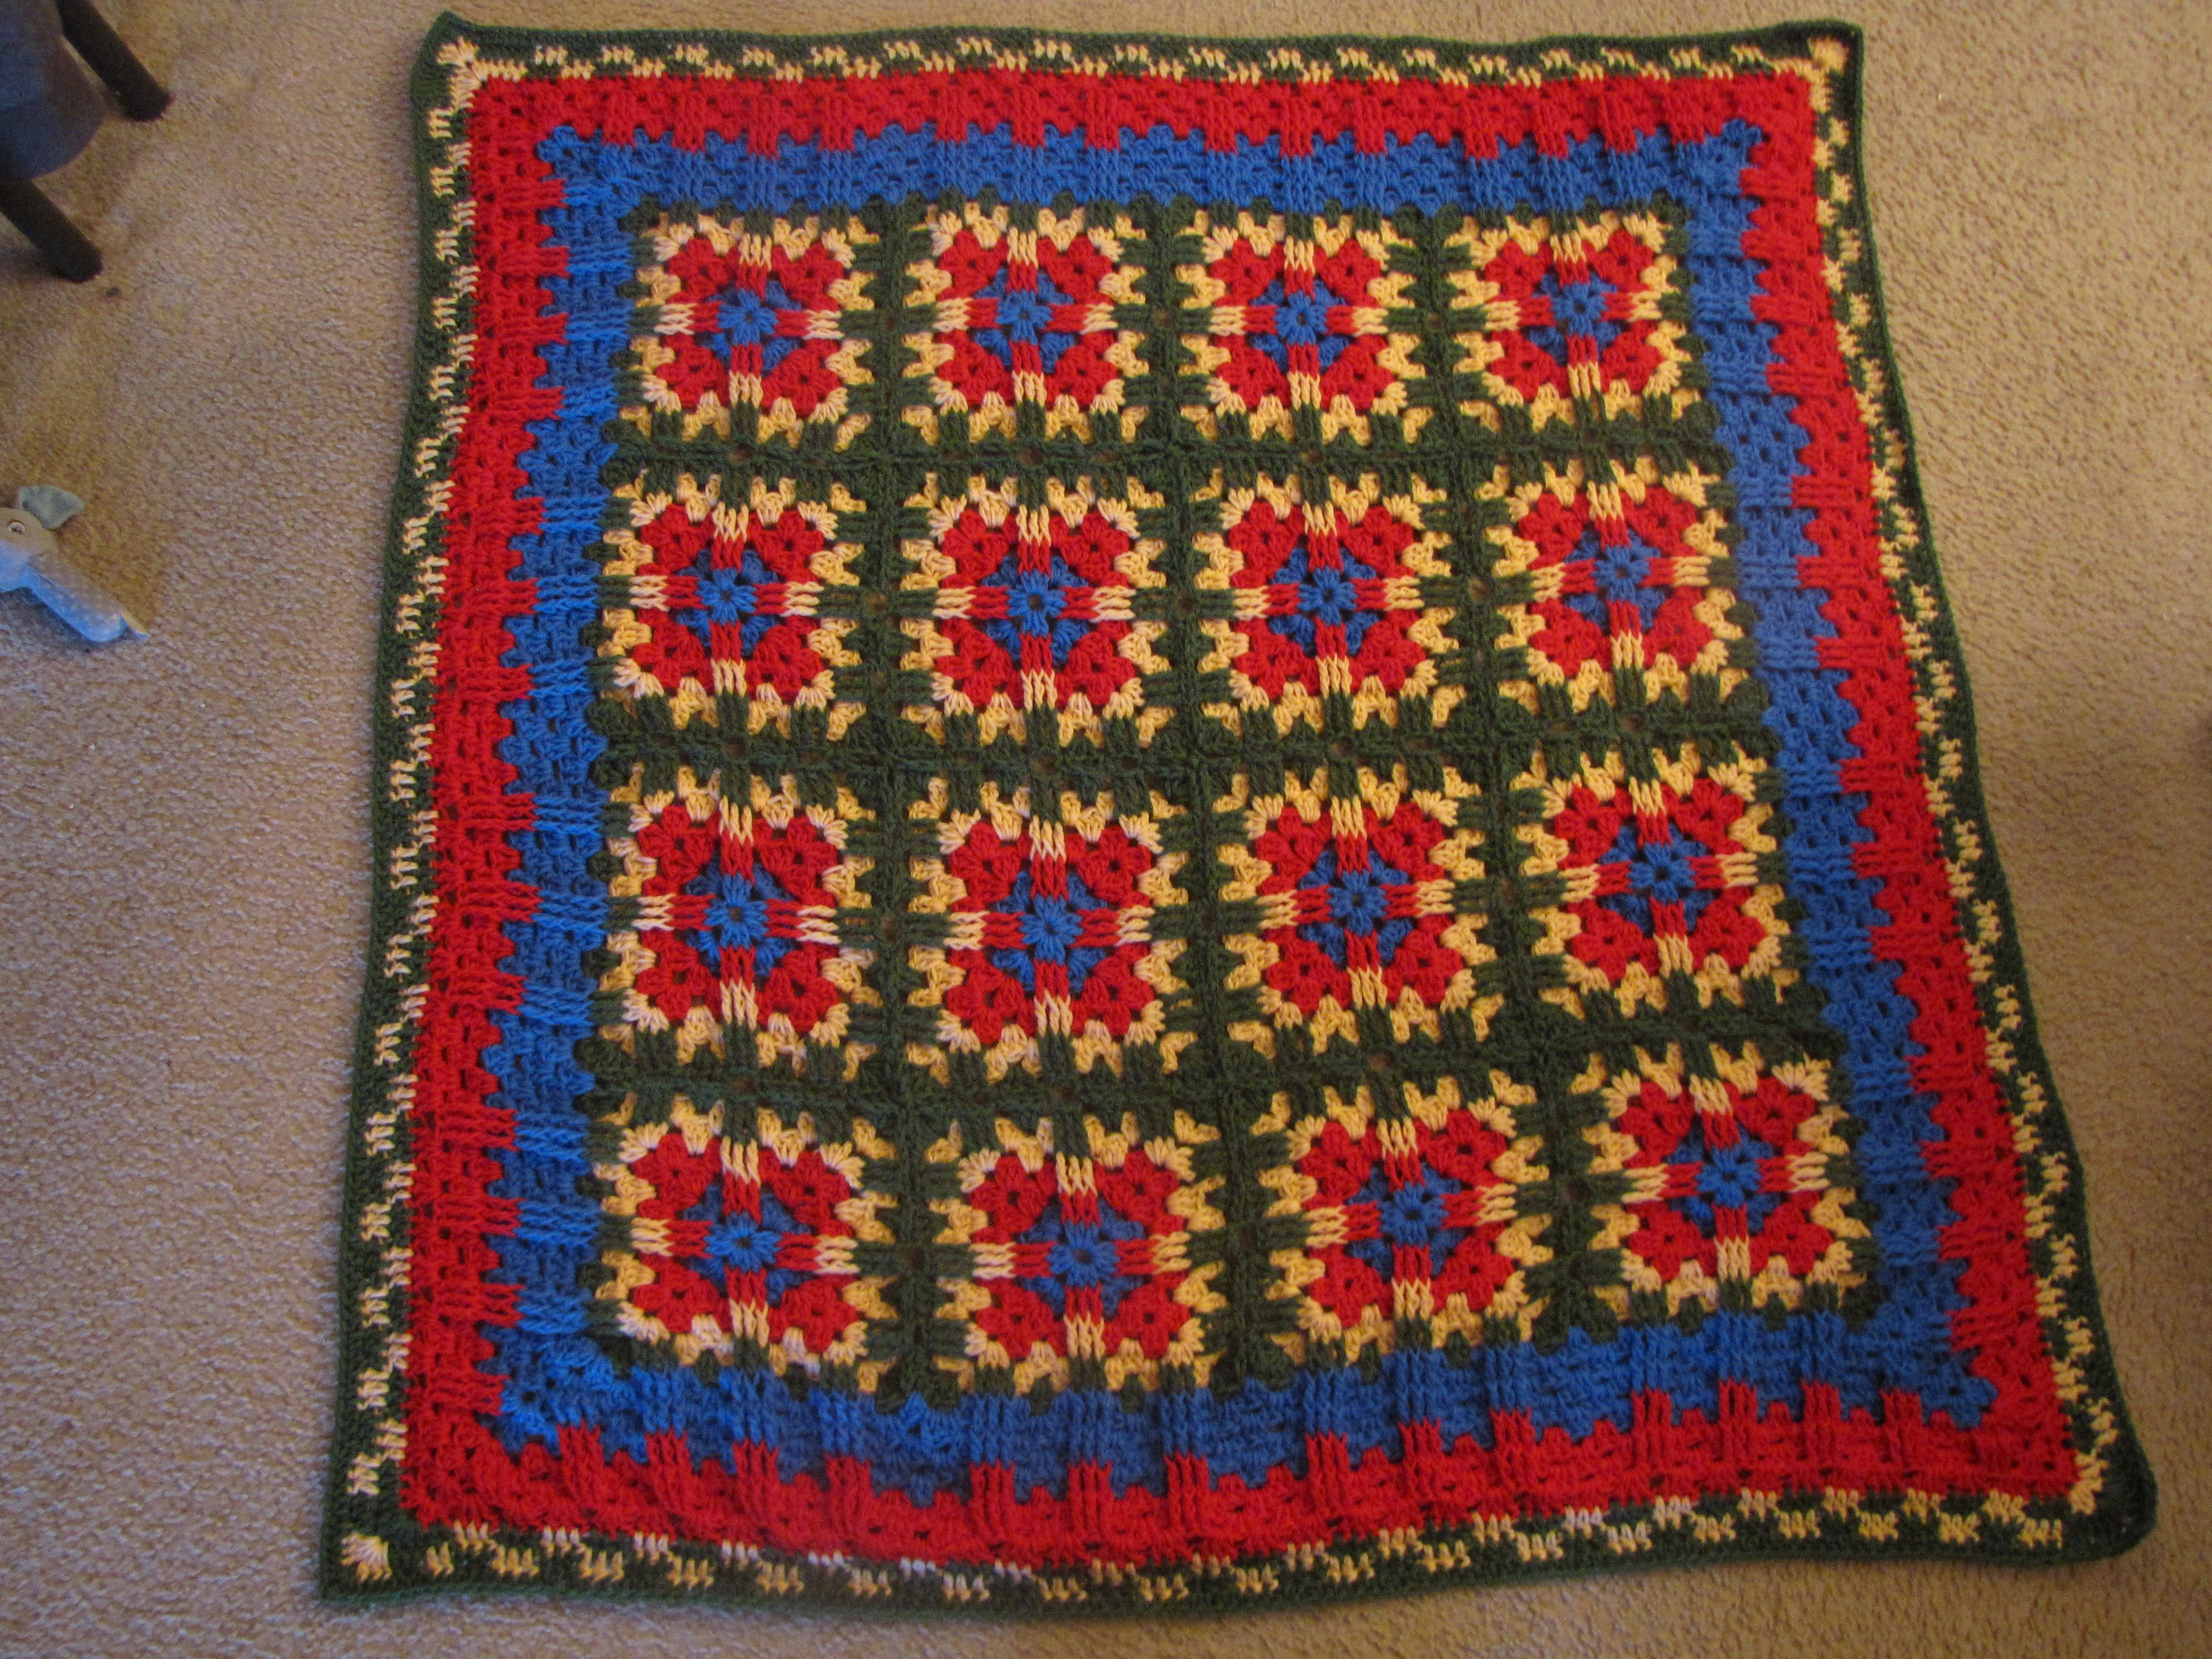 http://www.craftsy.com/pattern/crocheting/other/textured-granny ...